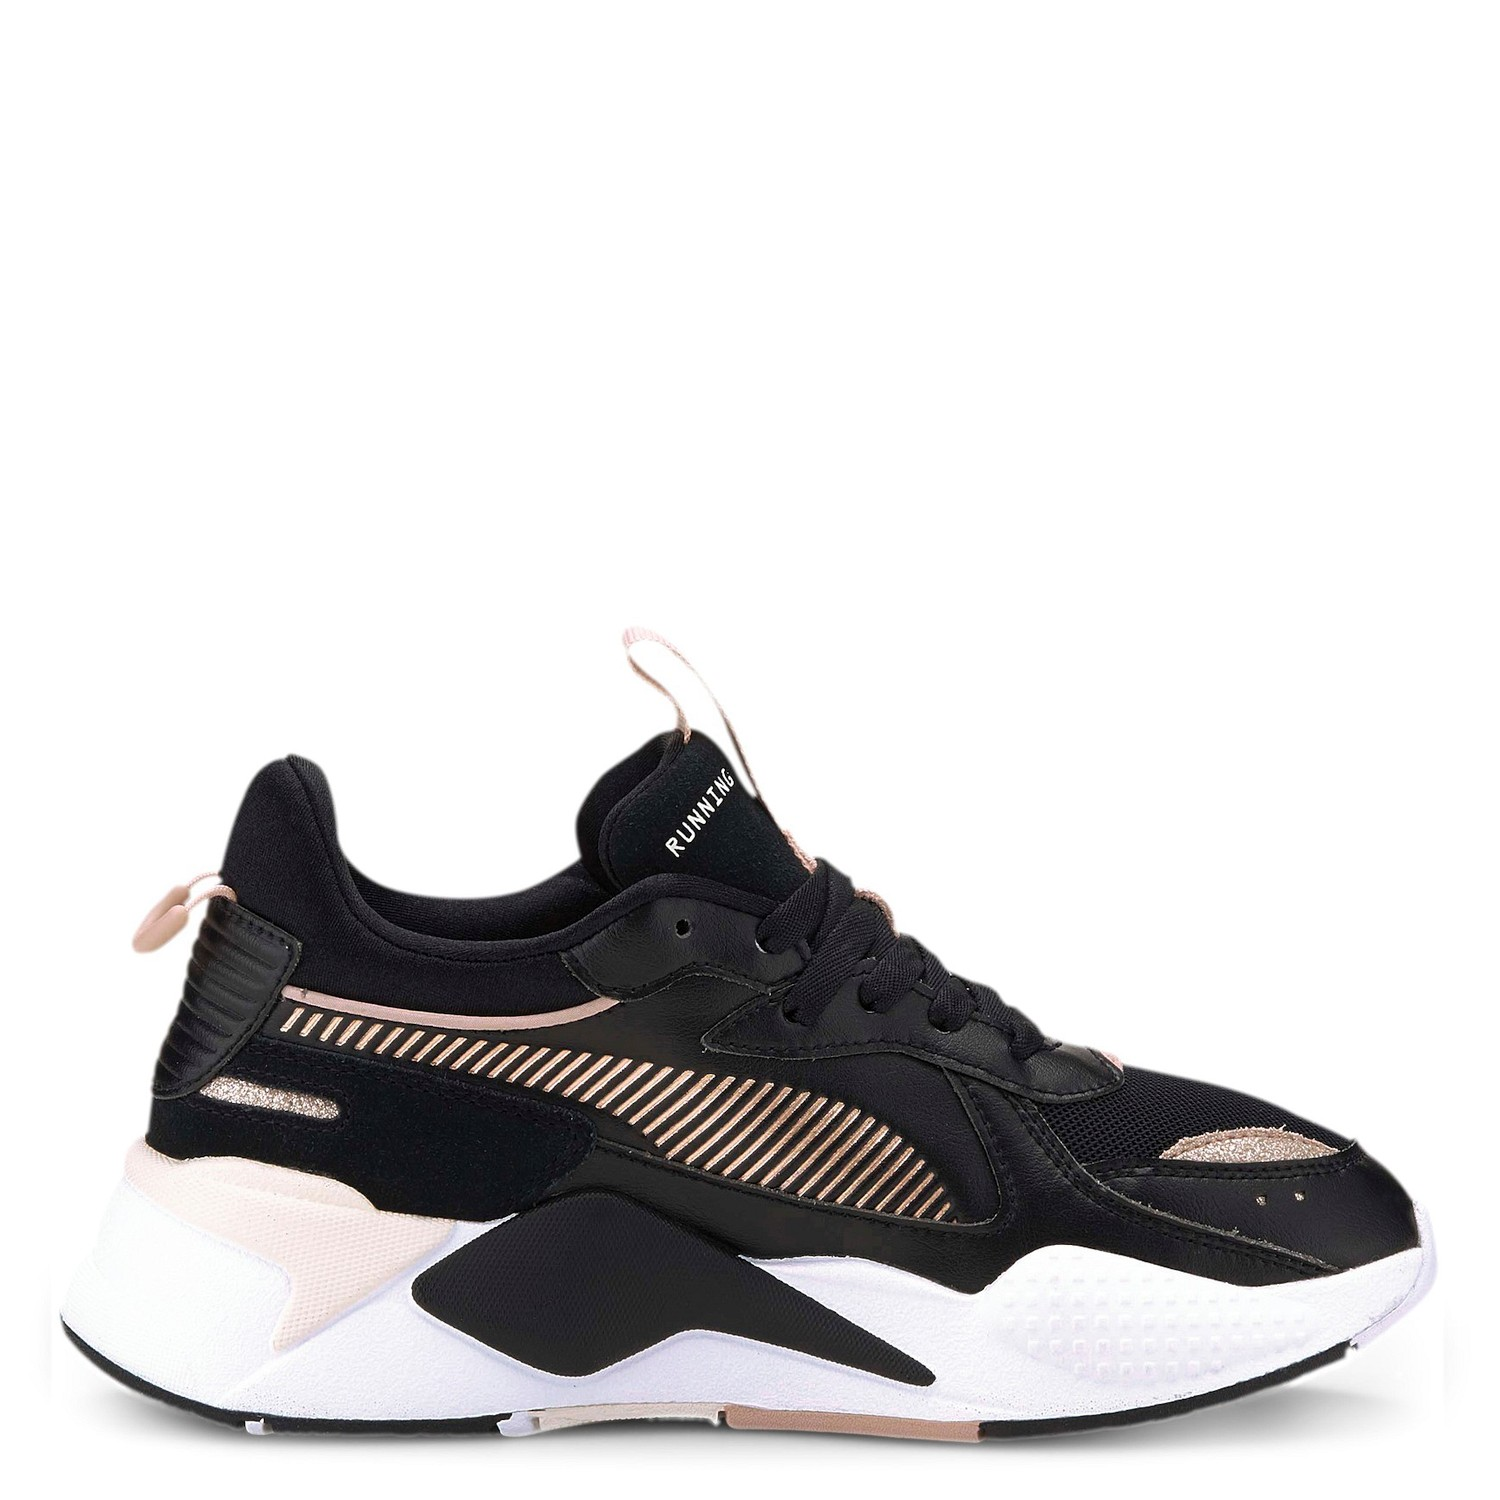 Puma Rs Schuh On Sale, UP TO 65% OFF